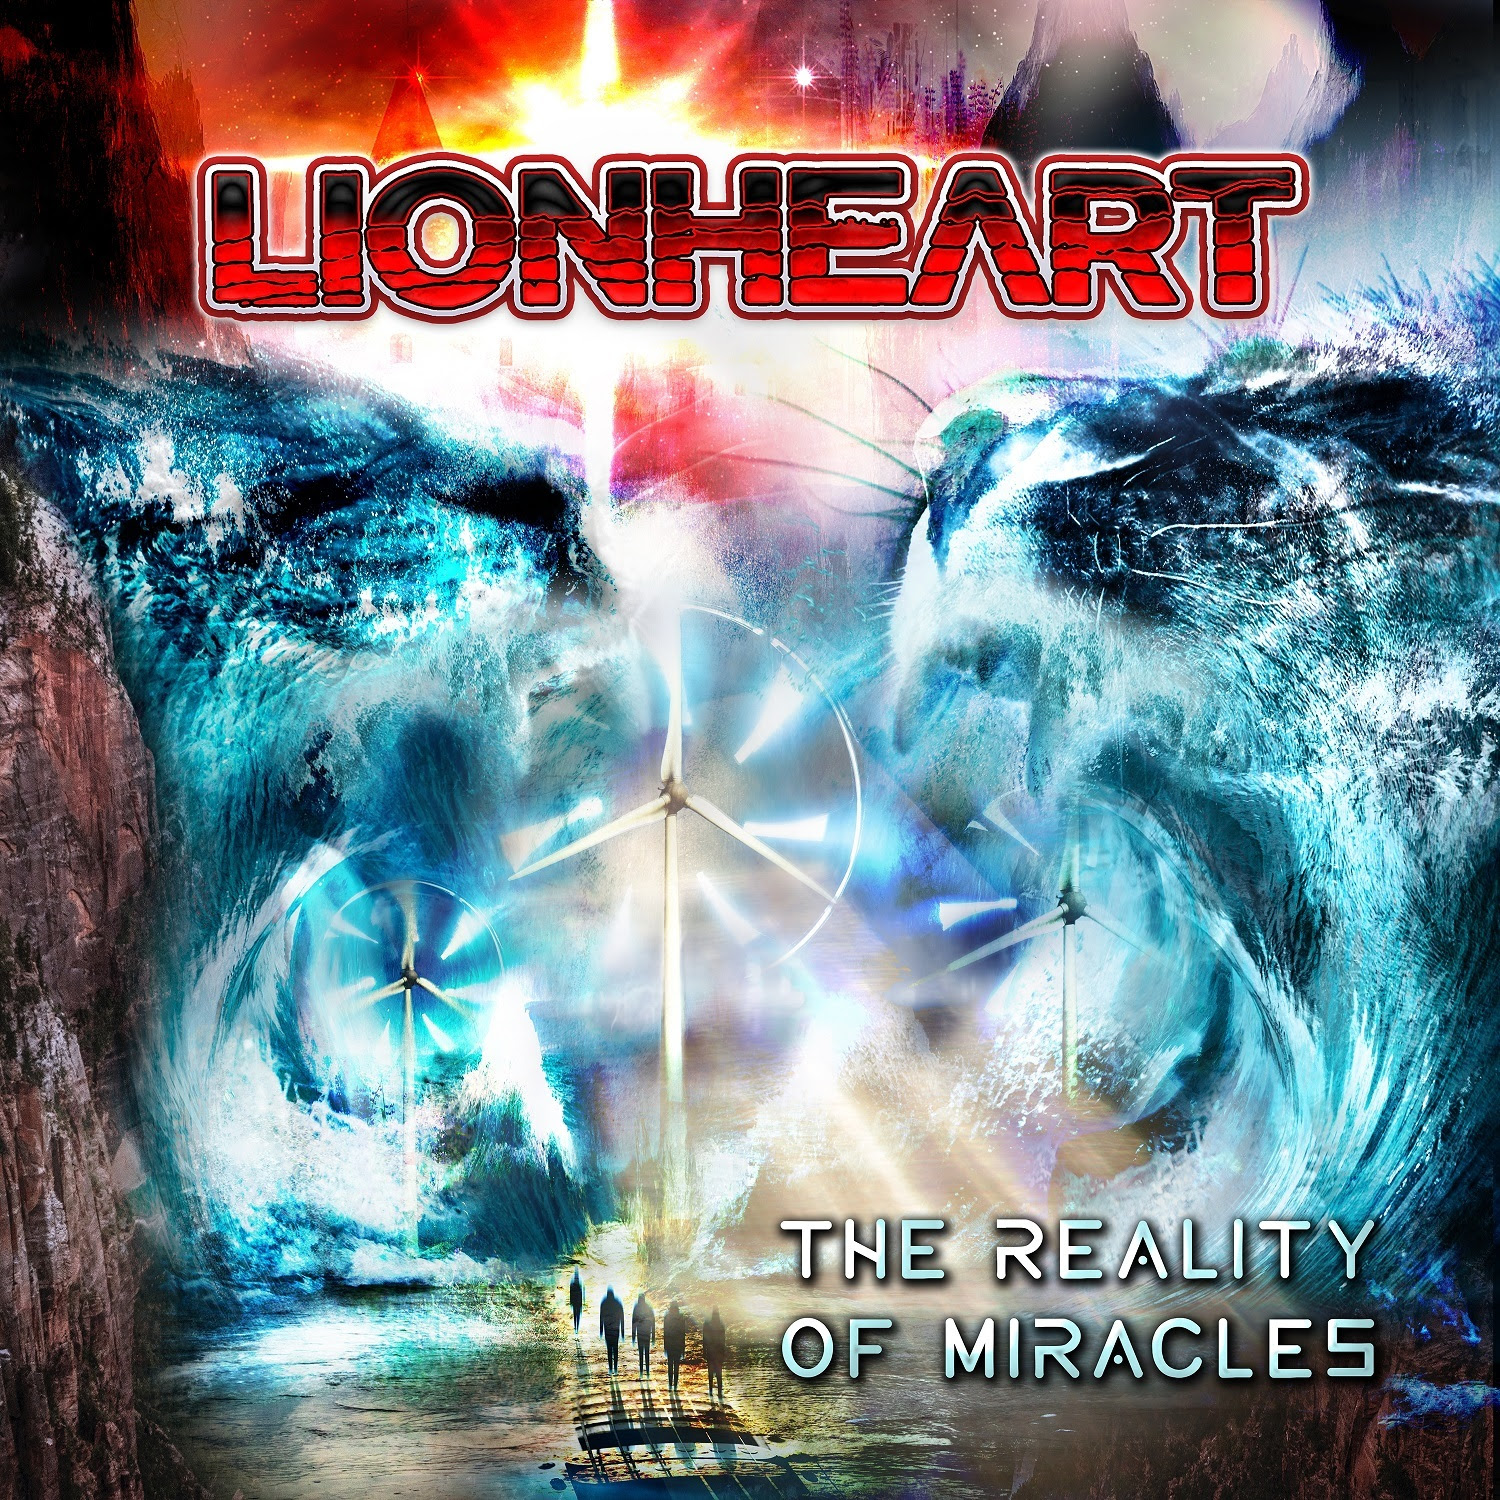 lionheart The Reality of Miracles